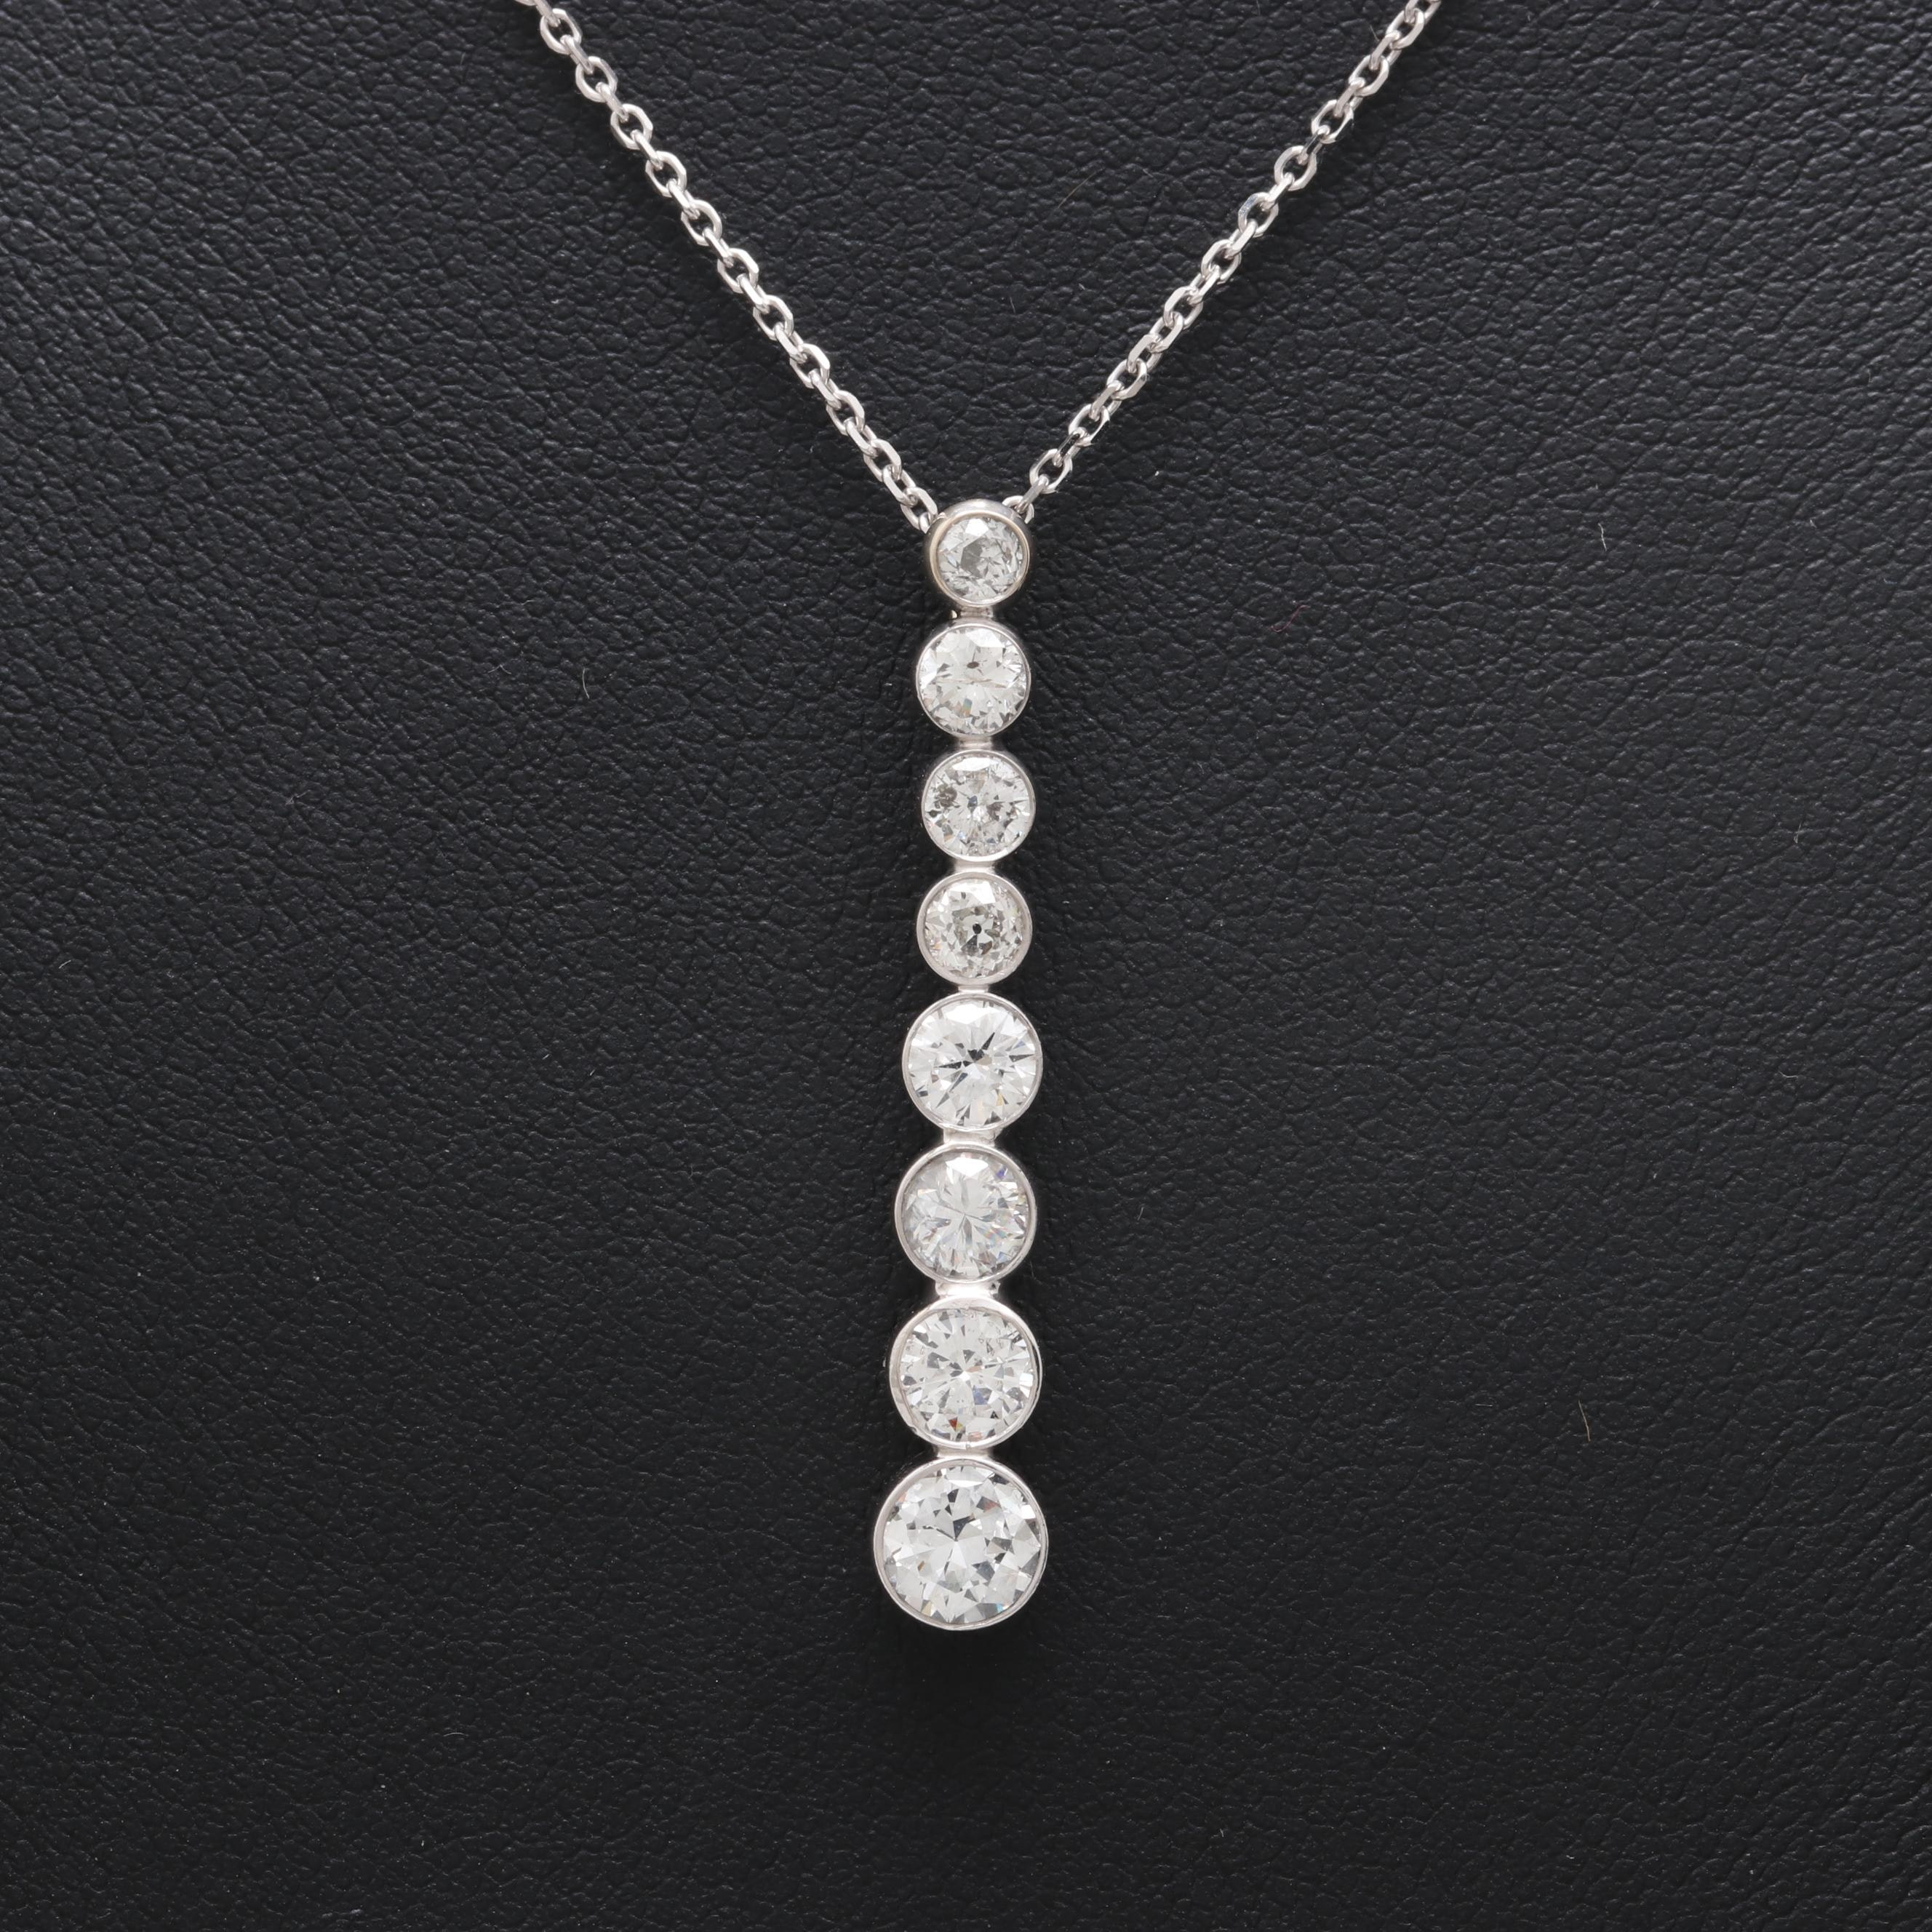 14K White Gold 1.48 CTW Diamond Journey Pendant Necklace